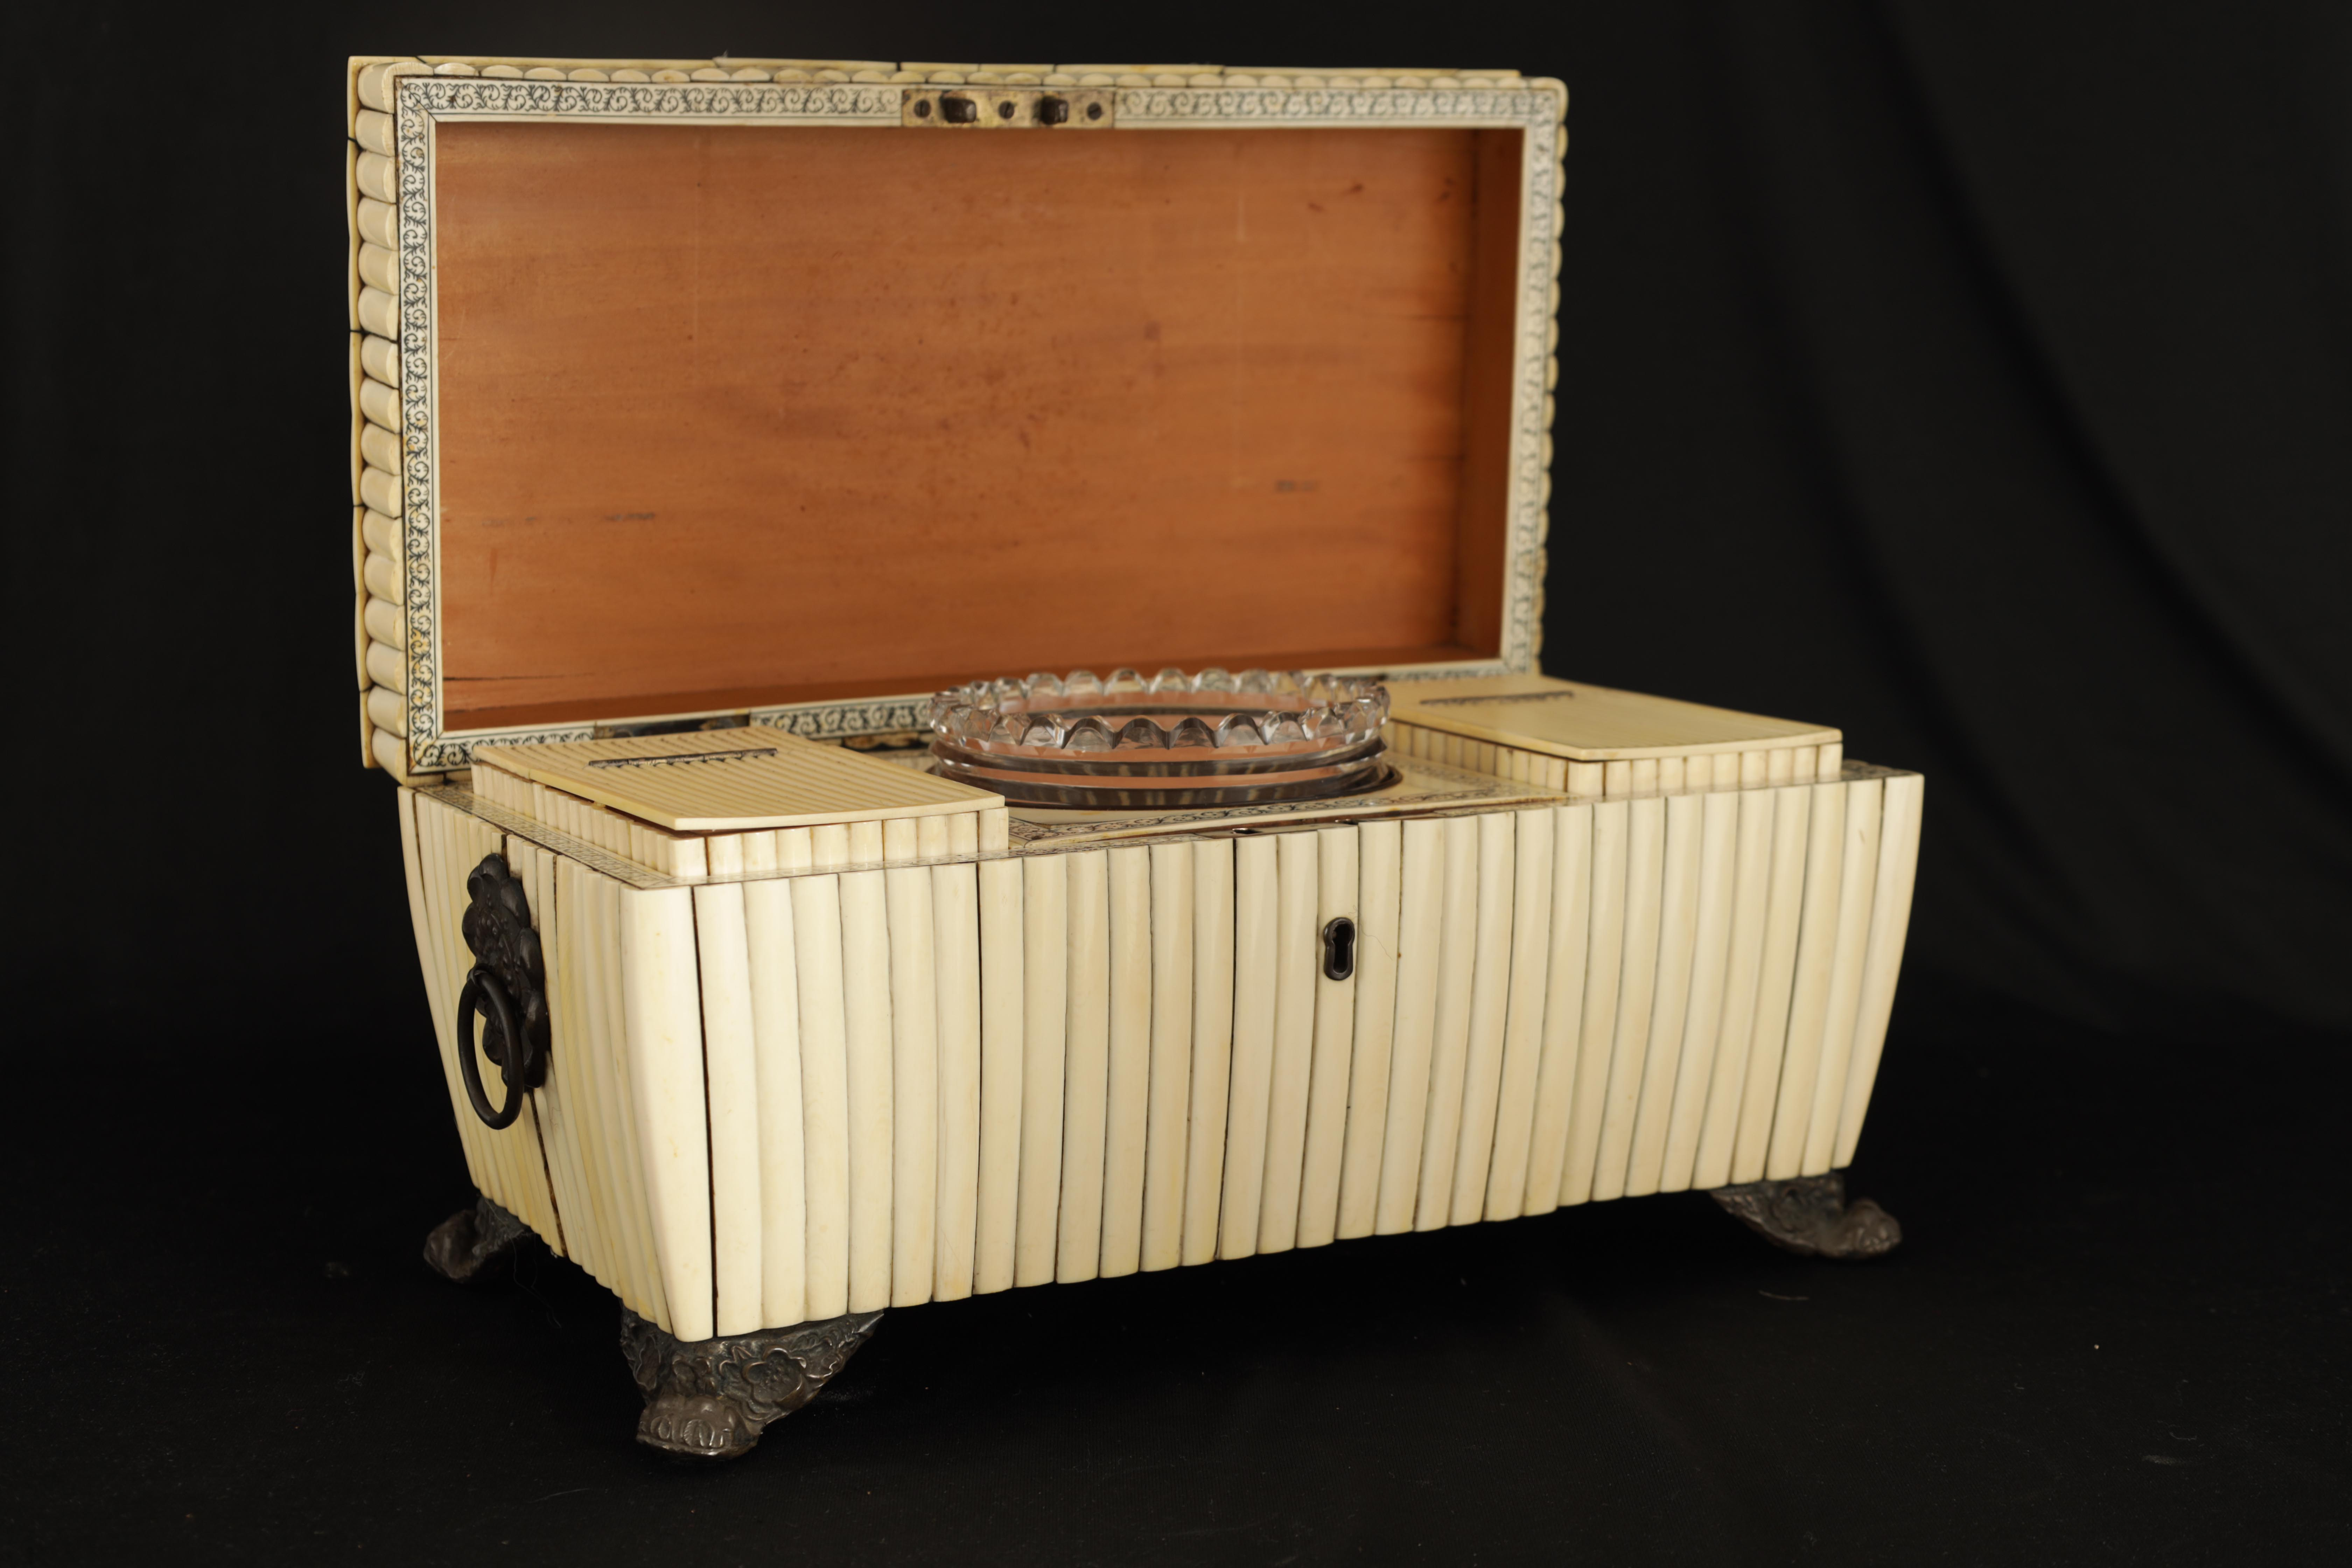 A REGENCY ANGLO-INDIAN IVORY AND SANDALWOOD VIZAGAPATAM TEA CADDY of sarcophagus form with gadroon - Image 2 of 12